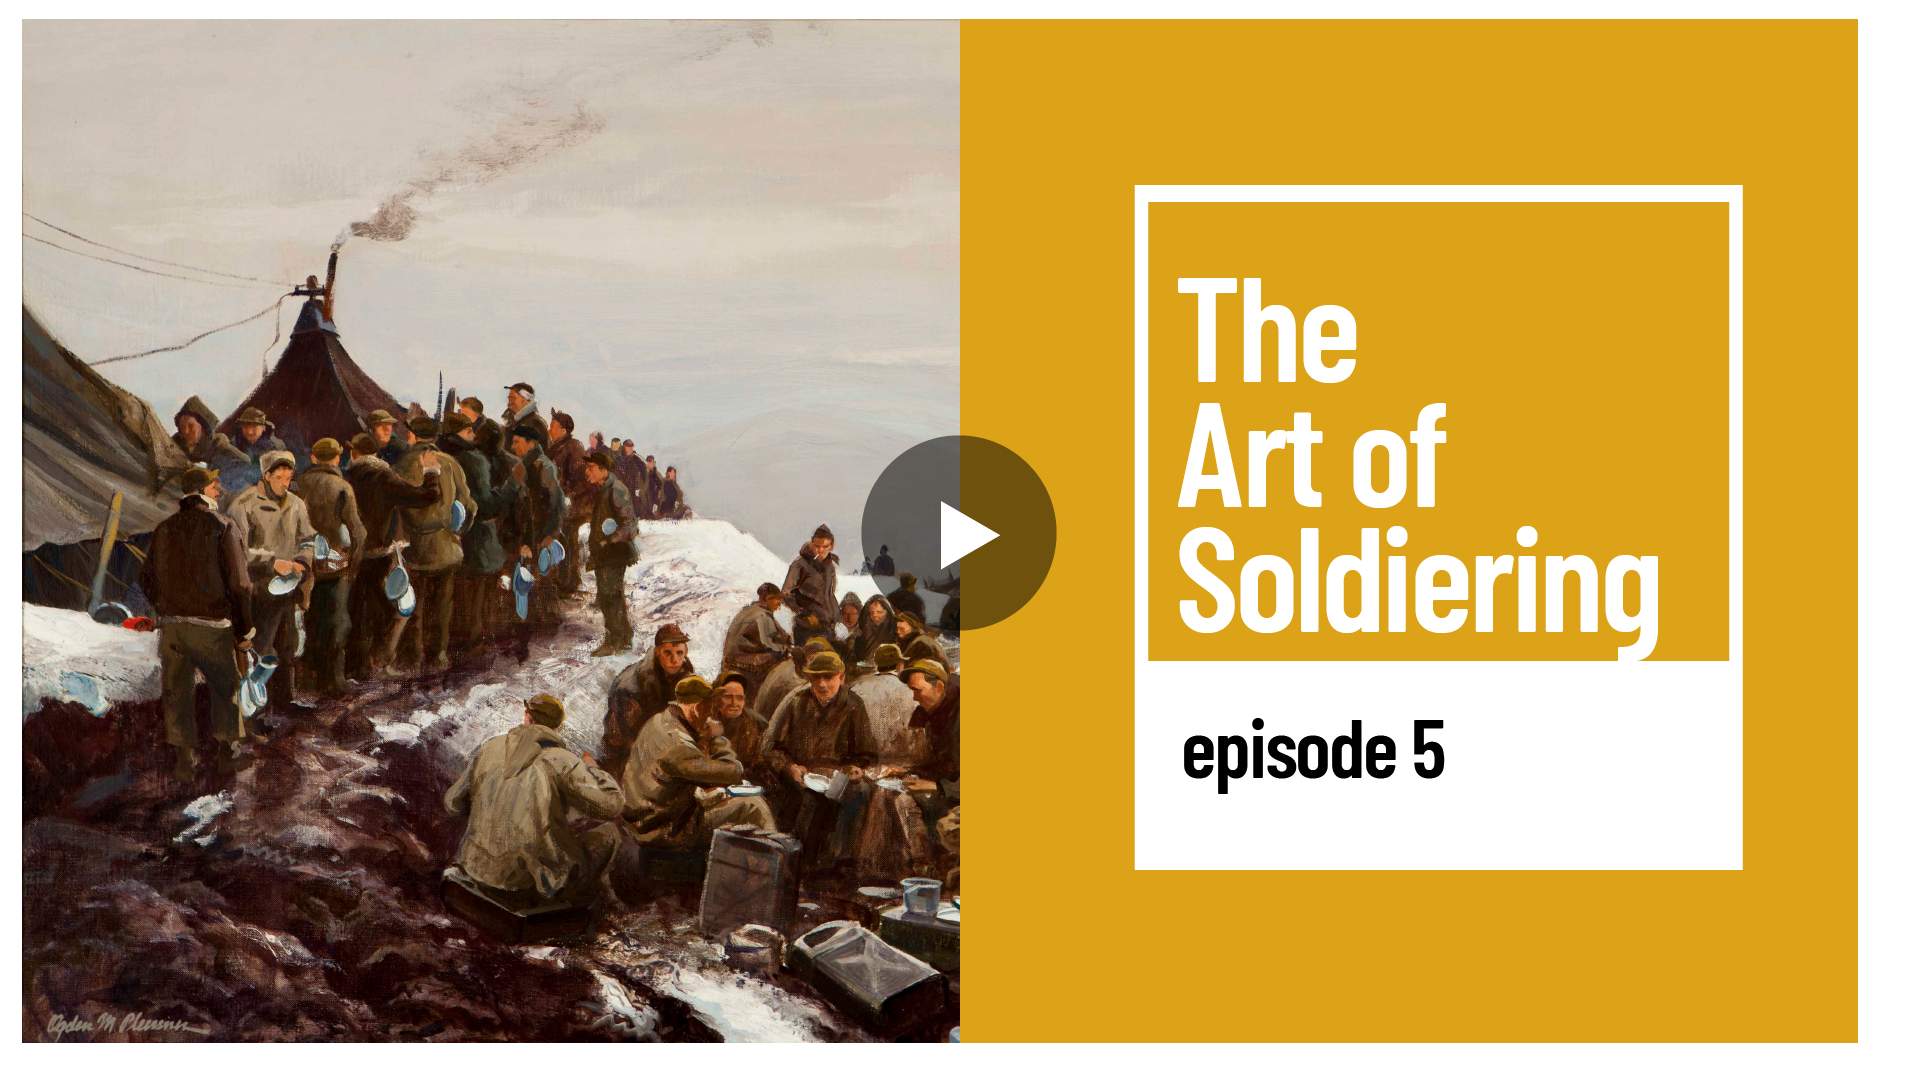 The Art of Soldiering